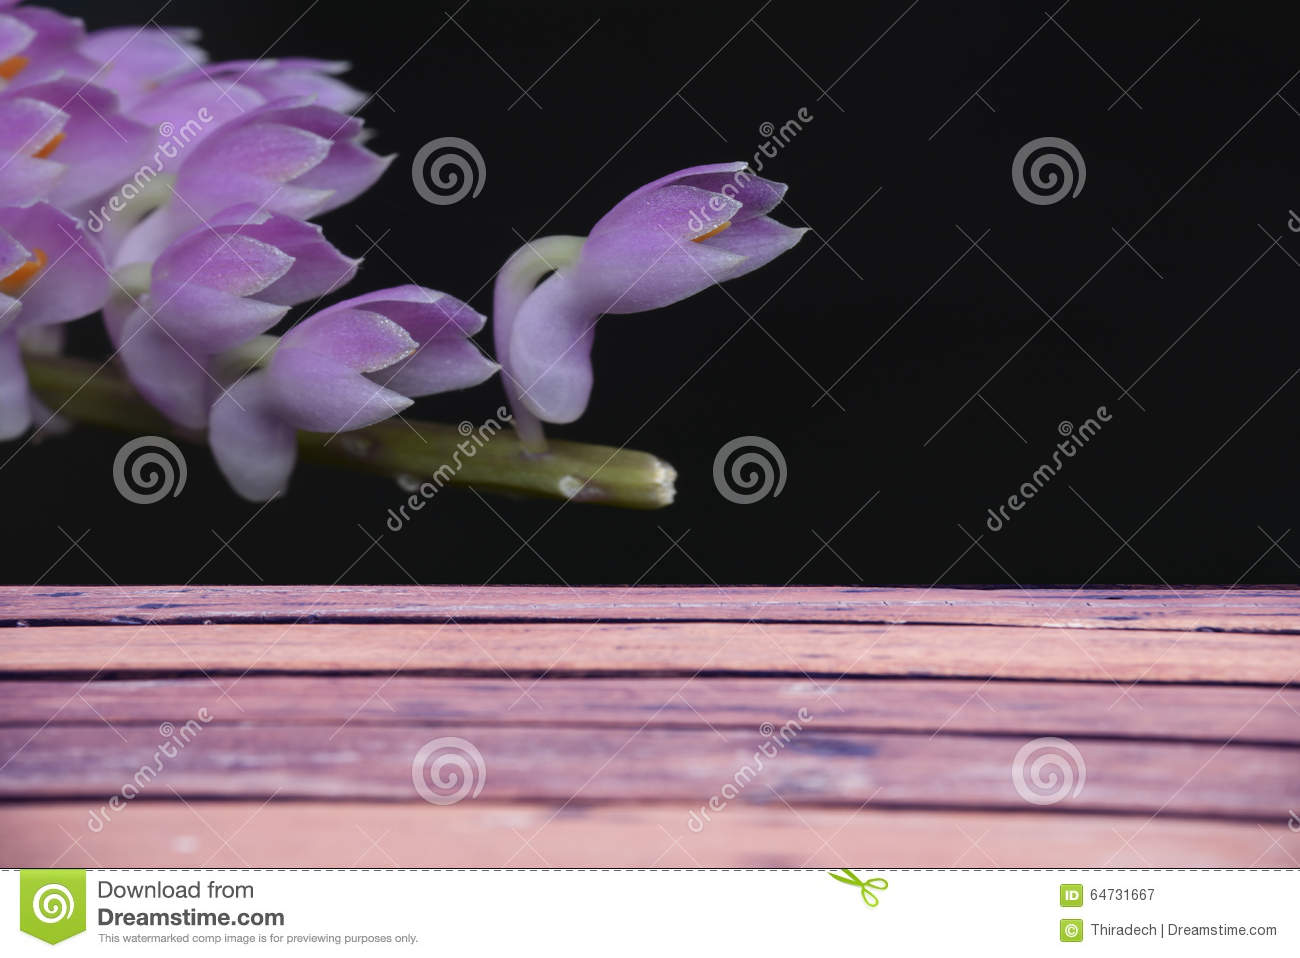 Plank background with black flowers.